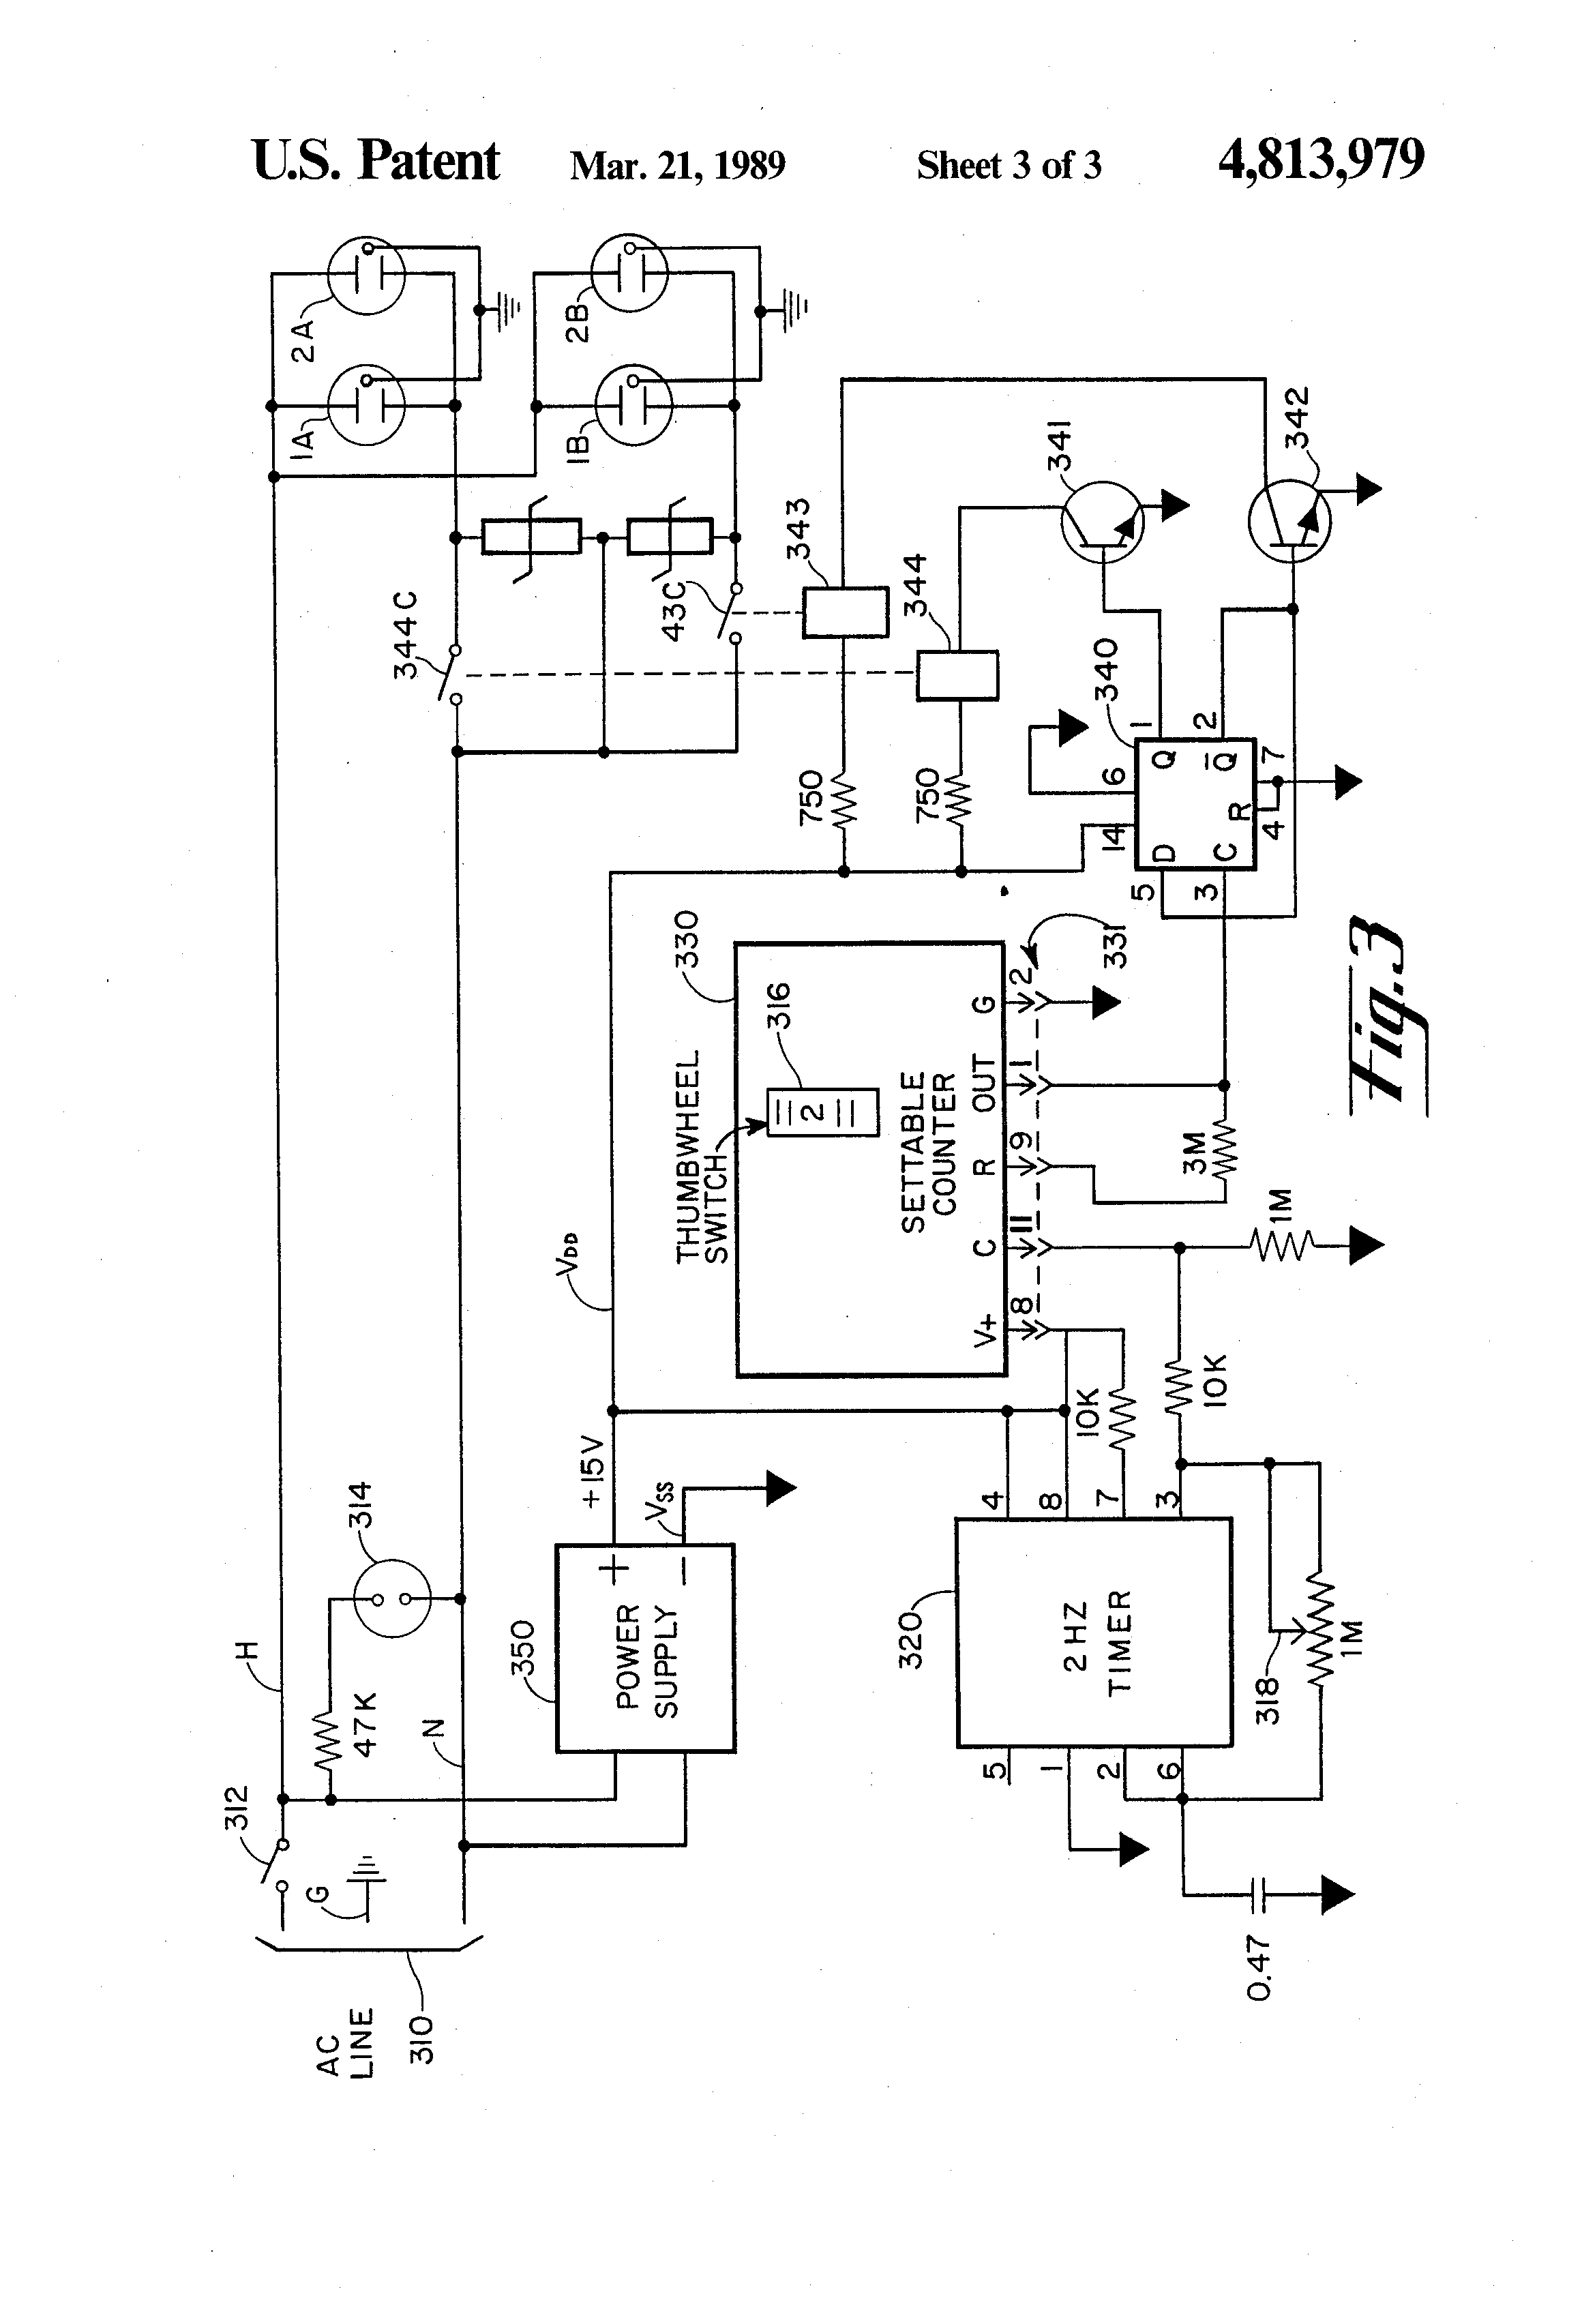 Honeywell Thermostat Manual Pdf furthermore Honeywell Limit Switch Wire Diagram additionally 2006 Cummins Diesel Engine Wiring Diagram furthermore Wiring Diagram For Pull Cord Light Switch besides 2015 Mustang Help Revive Ford Ranger United States. on honeywell turbo fan wiring diagram